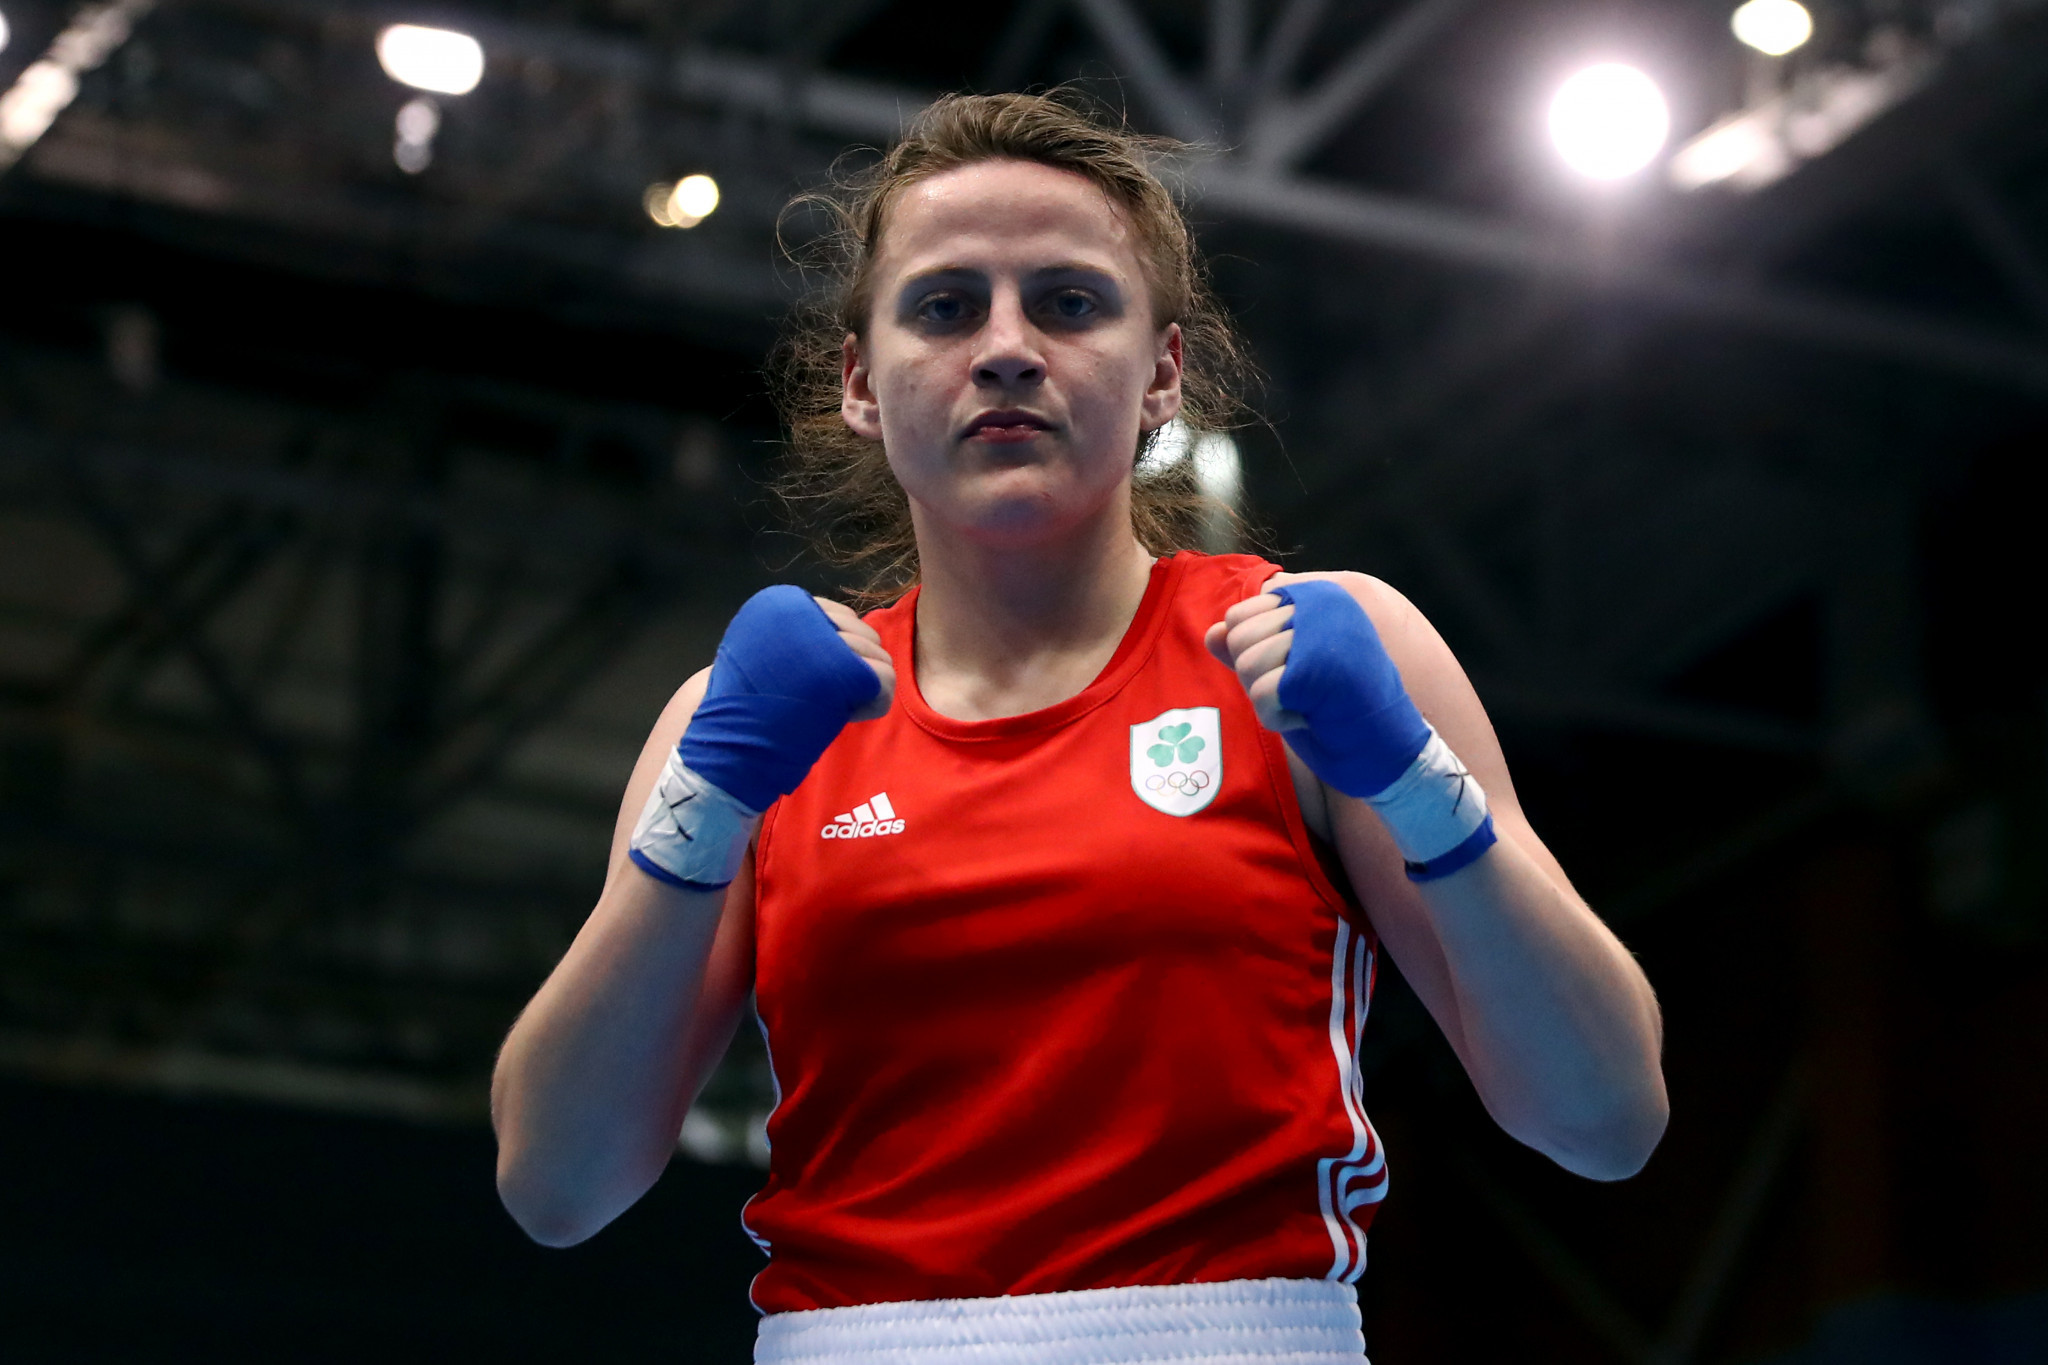 Michaela Walsh has said she has tried to take positives out of the Tokyo 2020 postponement ©Getty Images